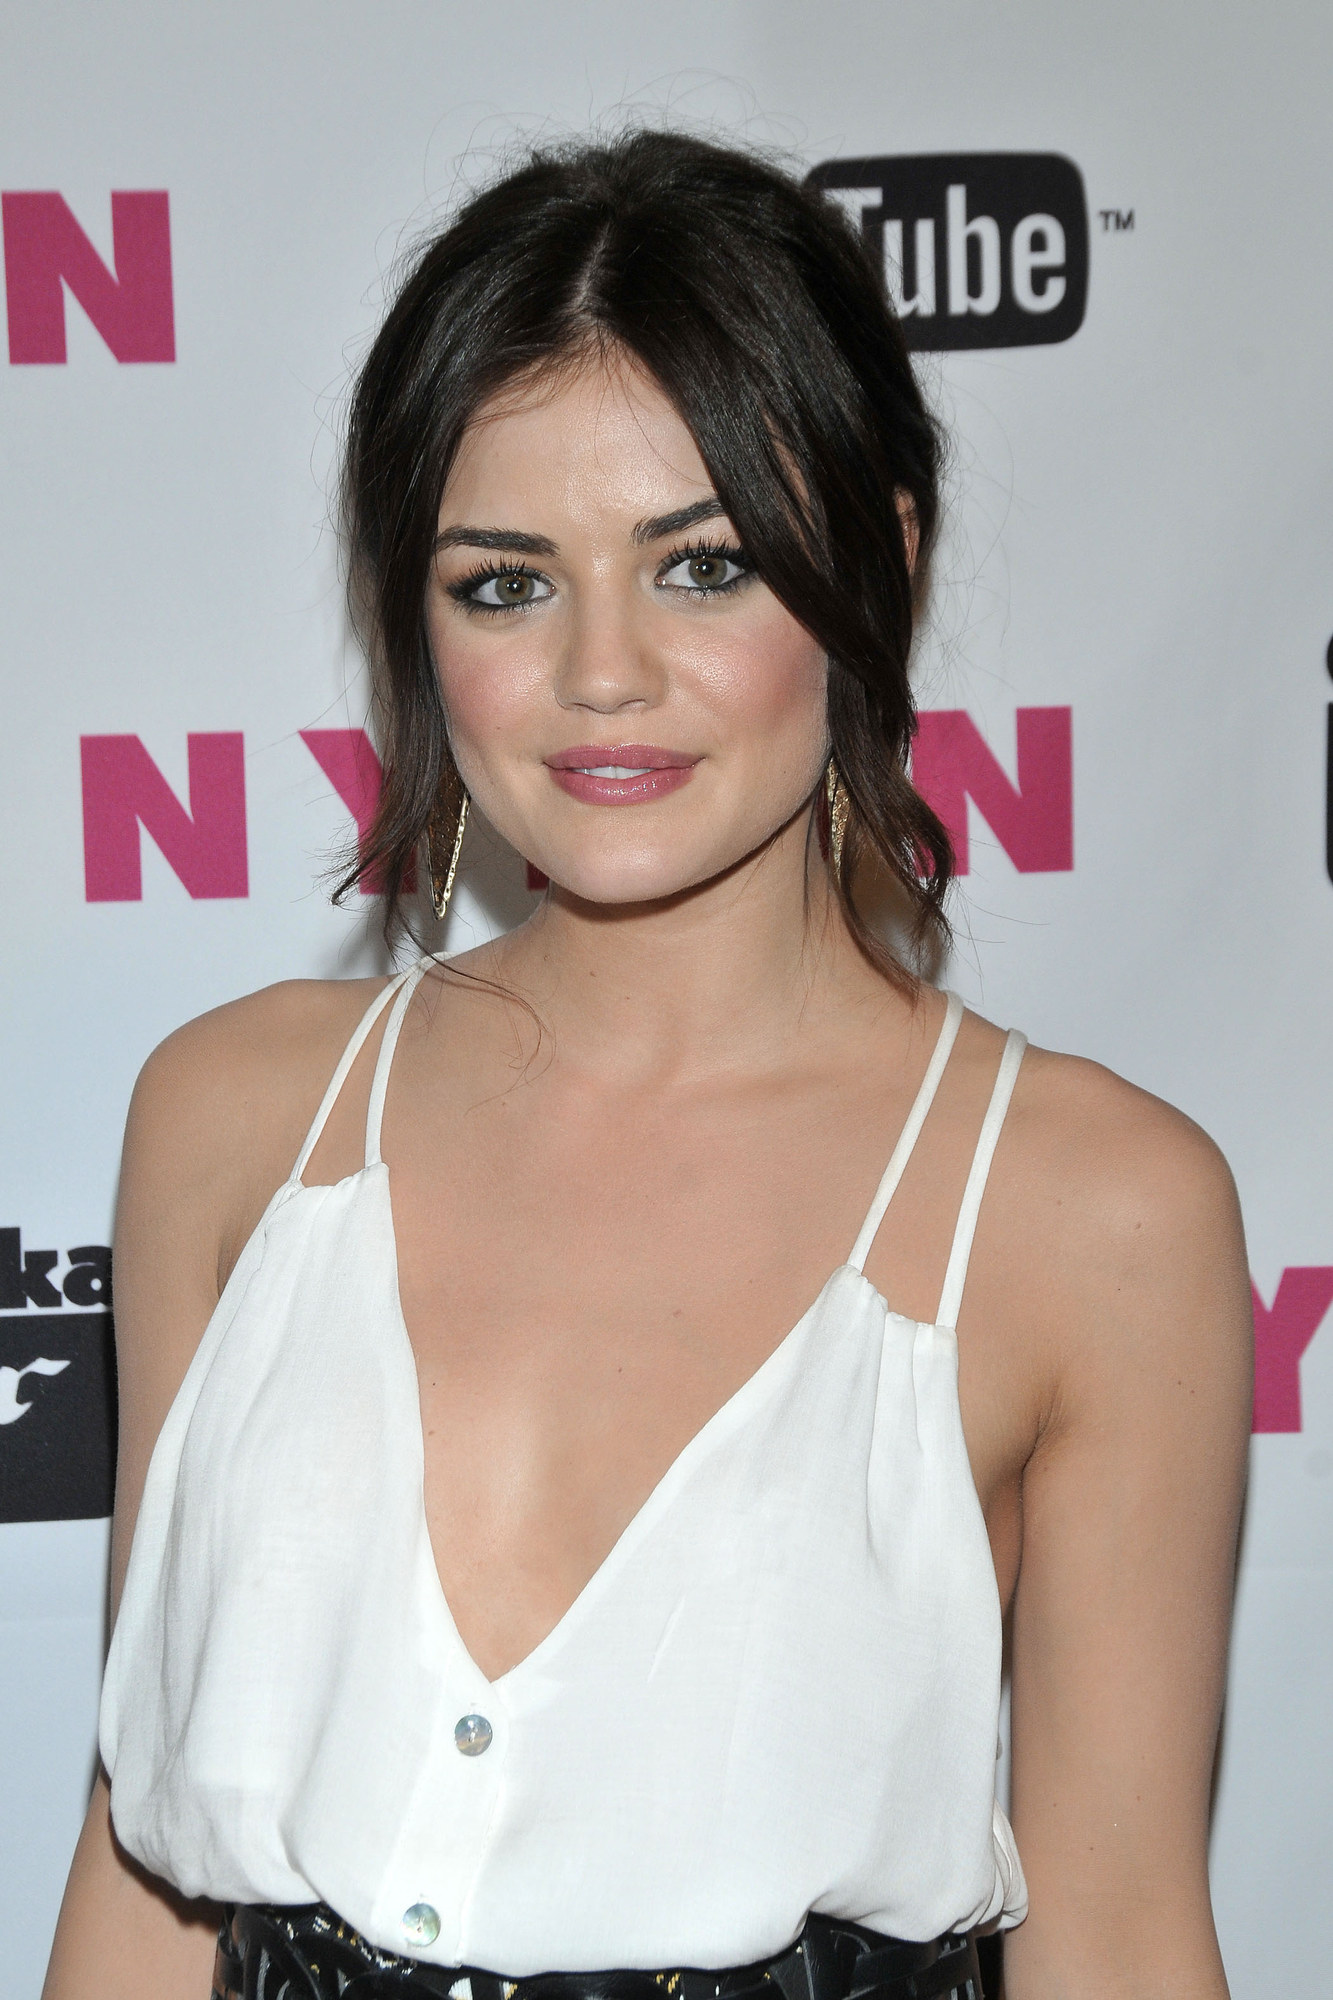 lucy hale movies